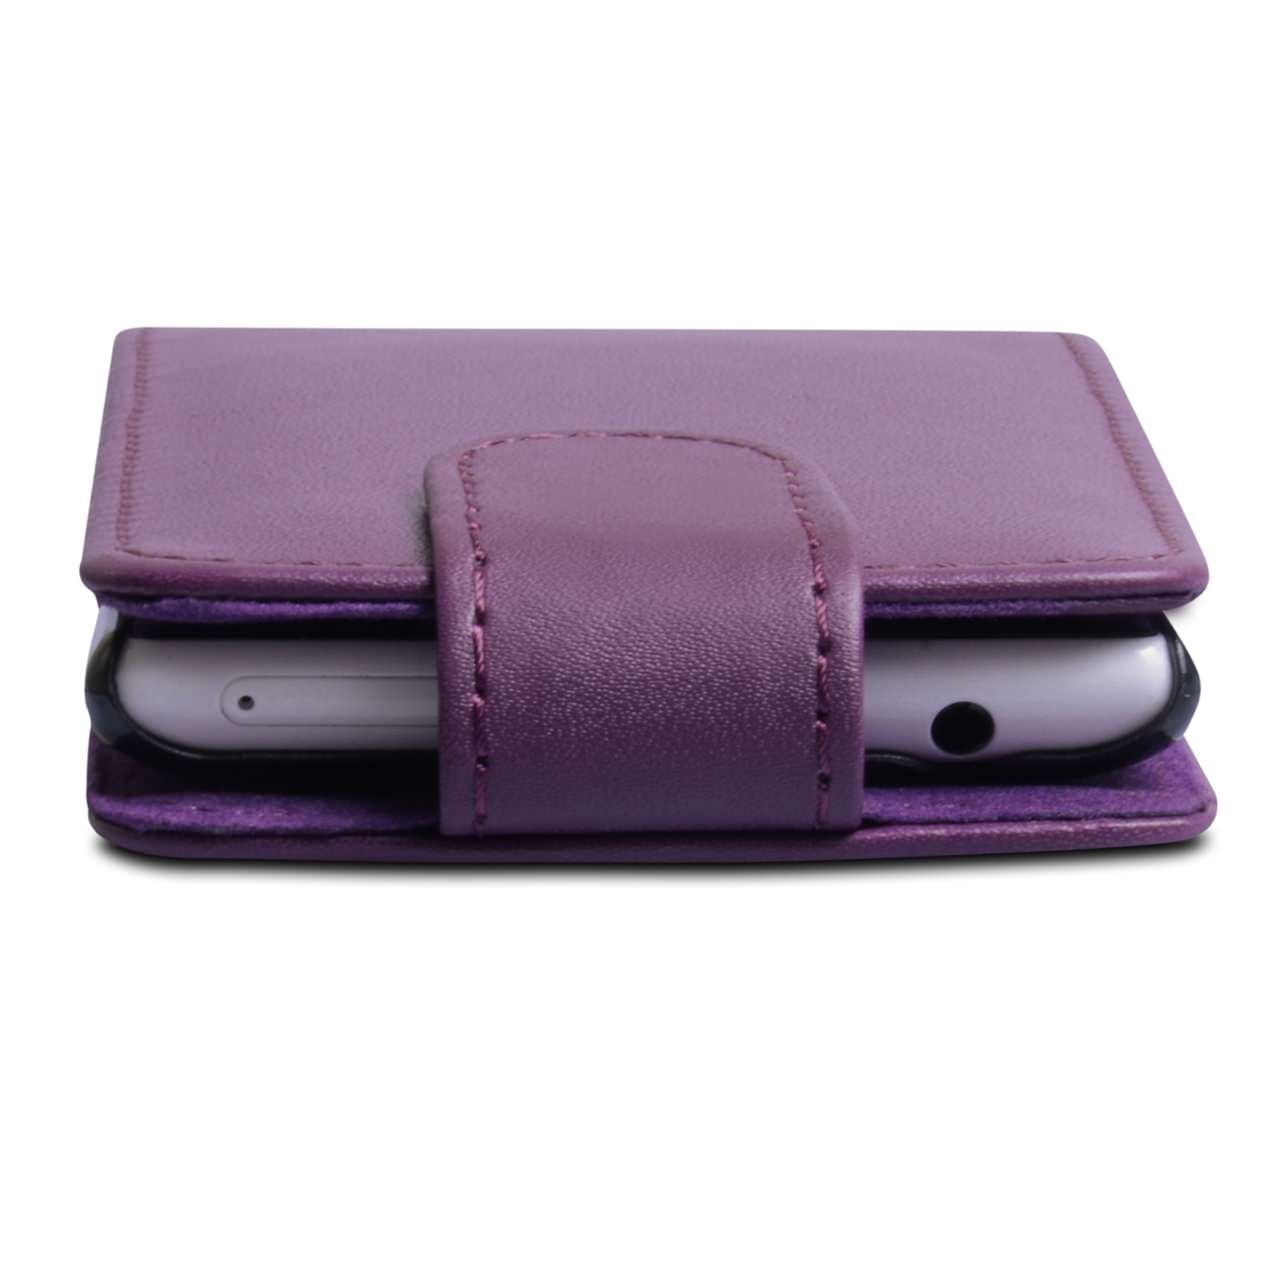 YouSave Accessories Nokia Lumia 720 Leather Effect Flip Case - Purple